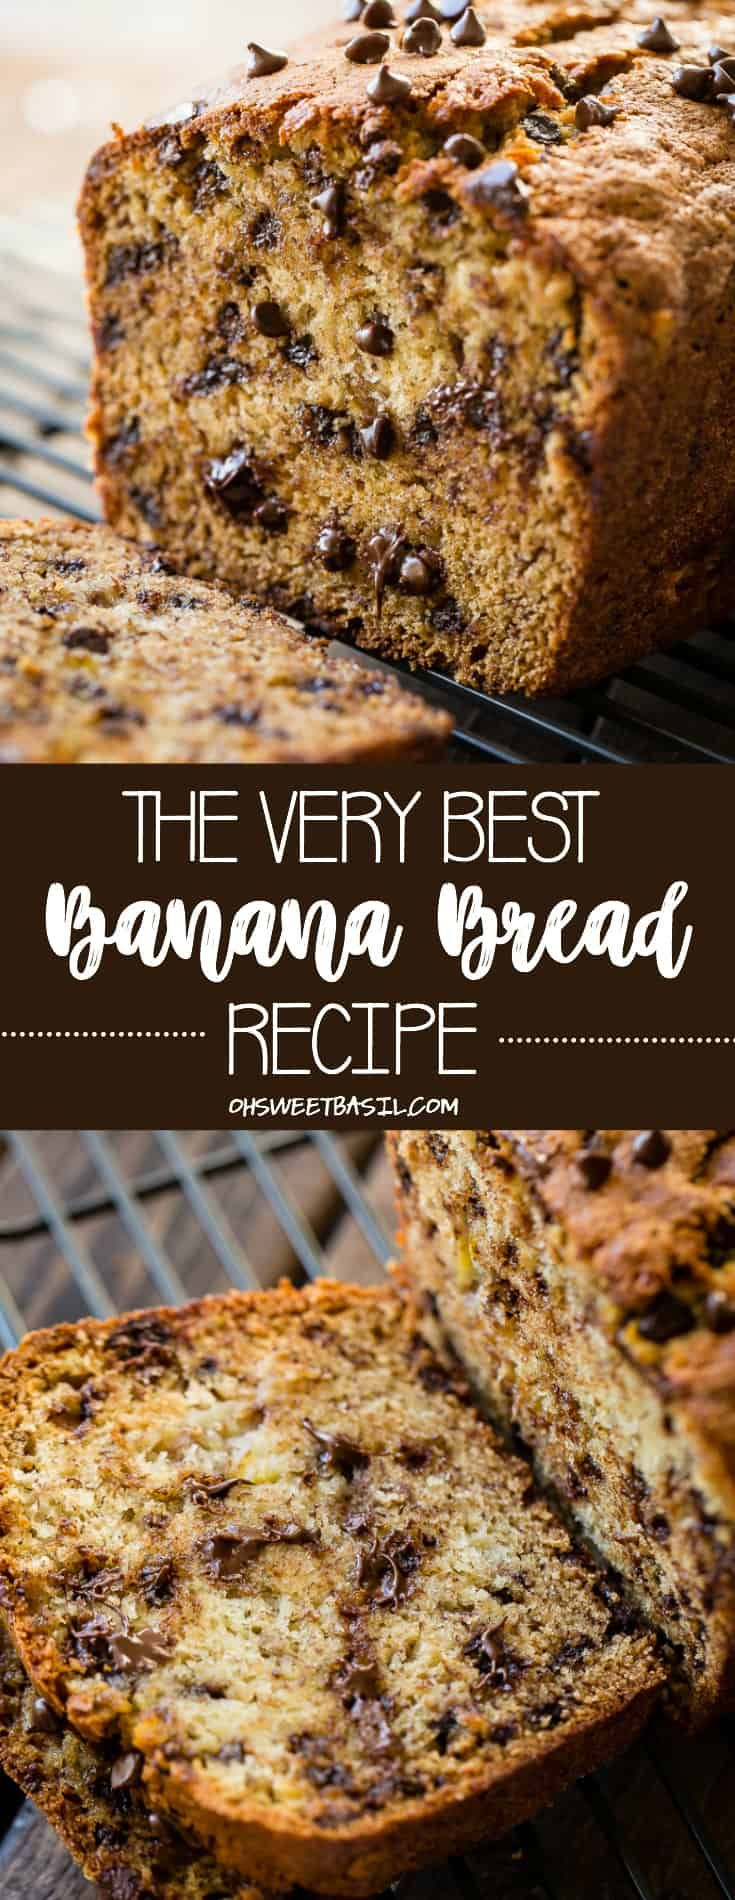 If you are searching for The Very Best Banana Bread Recipe have no fear! I have made over 100 banana bread recipes and finally found the one. This loaf is perfectly moist and filled with mini chocolate chips. Your house will smell like heaven after baking it in the oven!